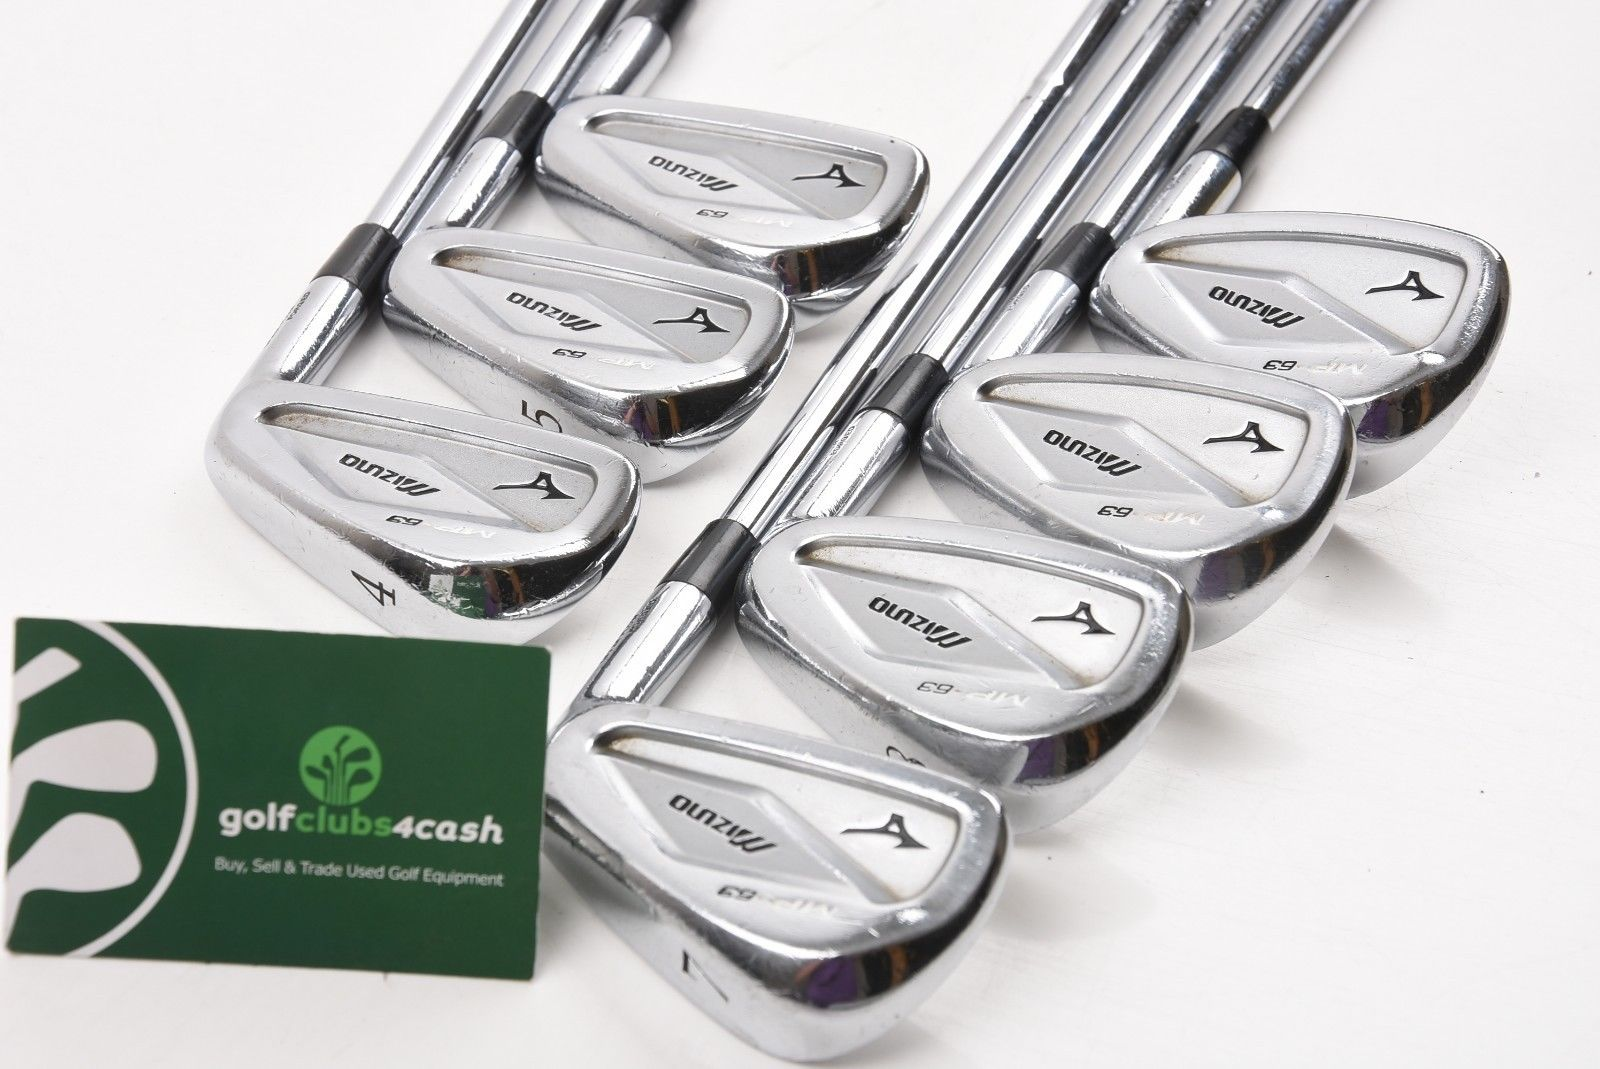 46e56996cccc MIZUNO MP-63 FORGED IRONS / 4-PW / STIFF DYNAMIC GOLD S300 SHAFTS ...